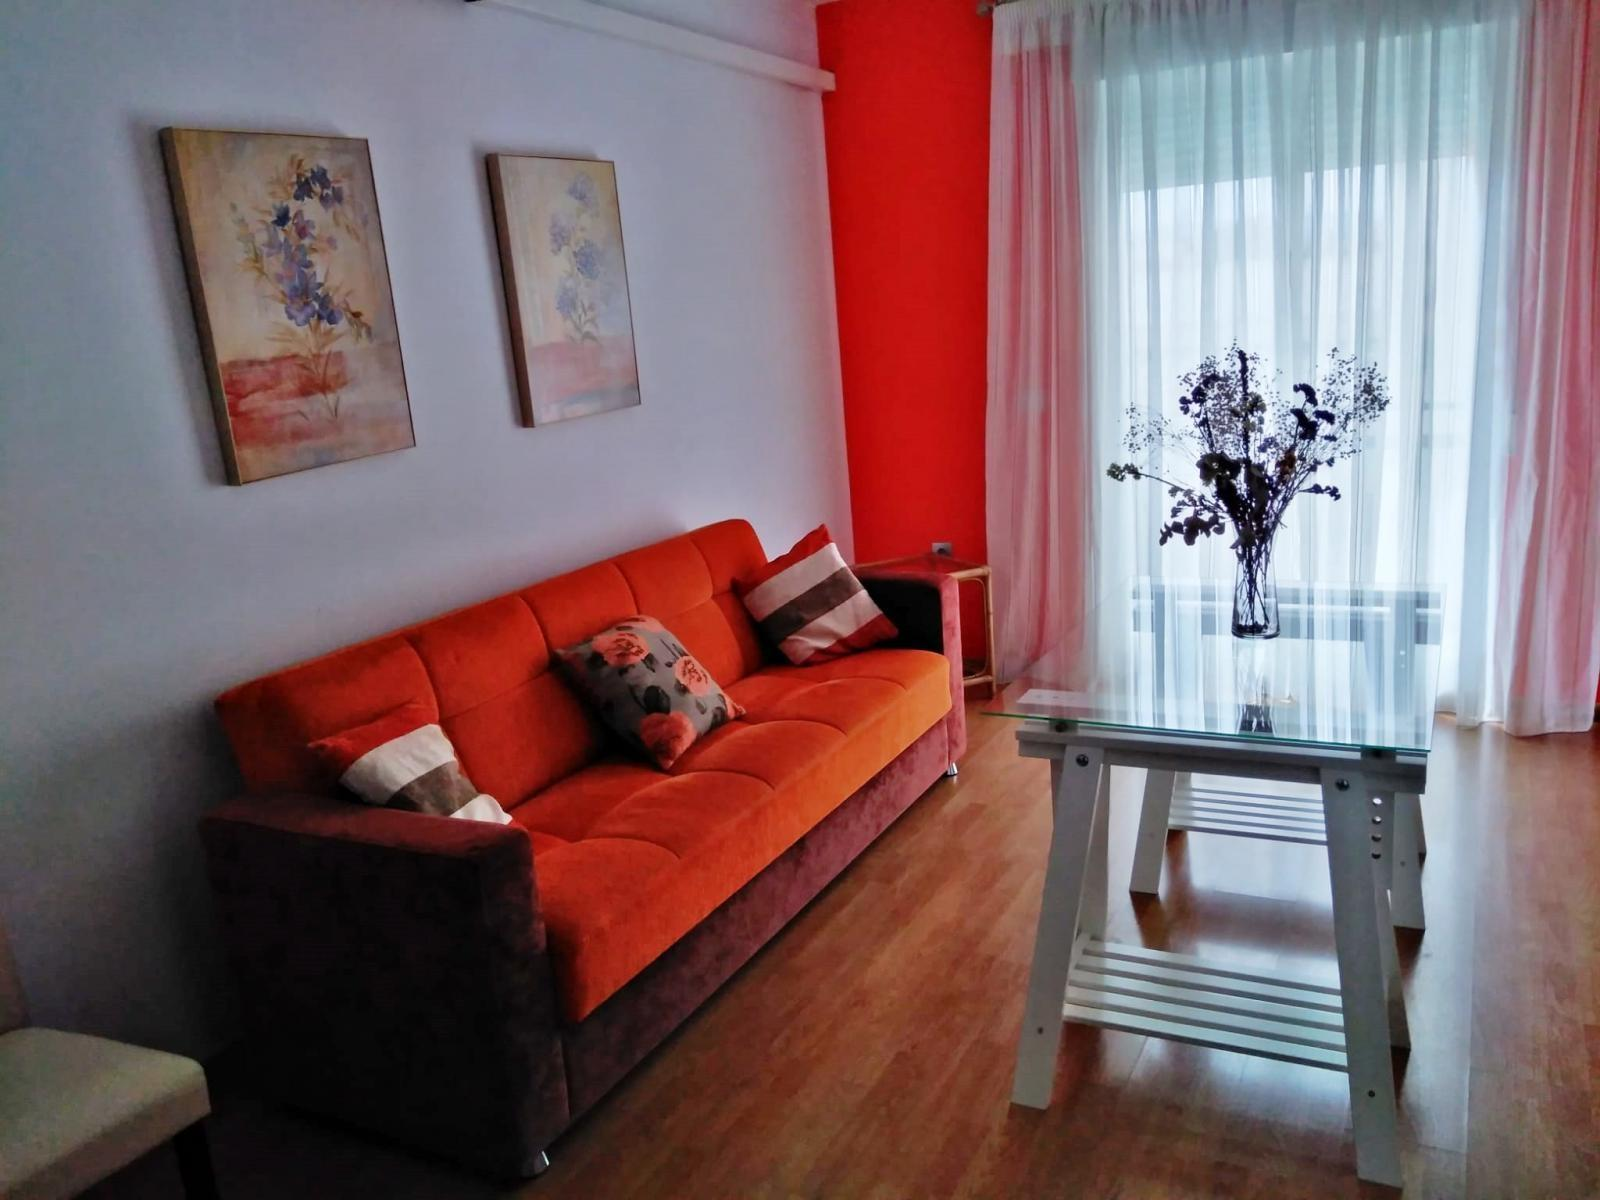 Piso in affitto a Alhendín, 400 €/mese (Stagione)